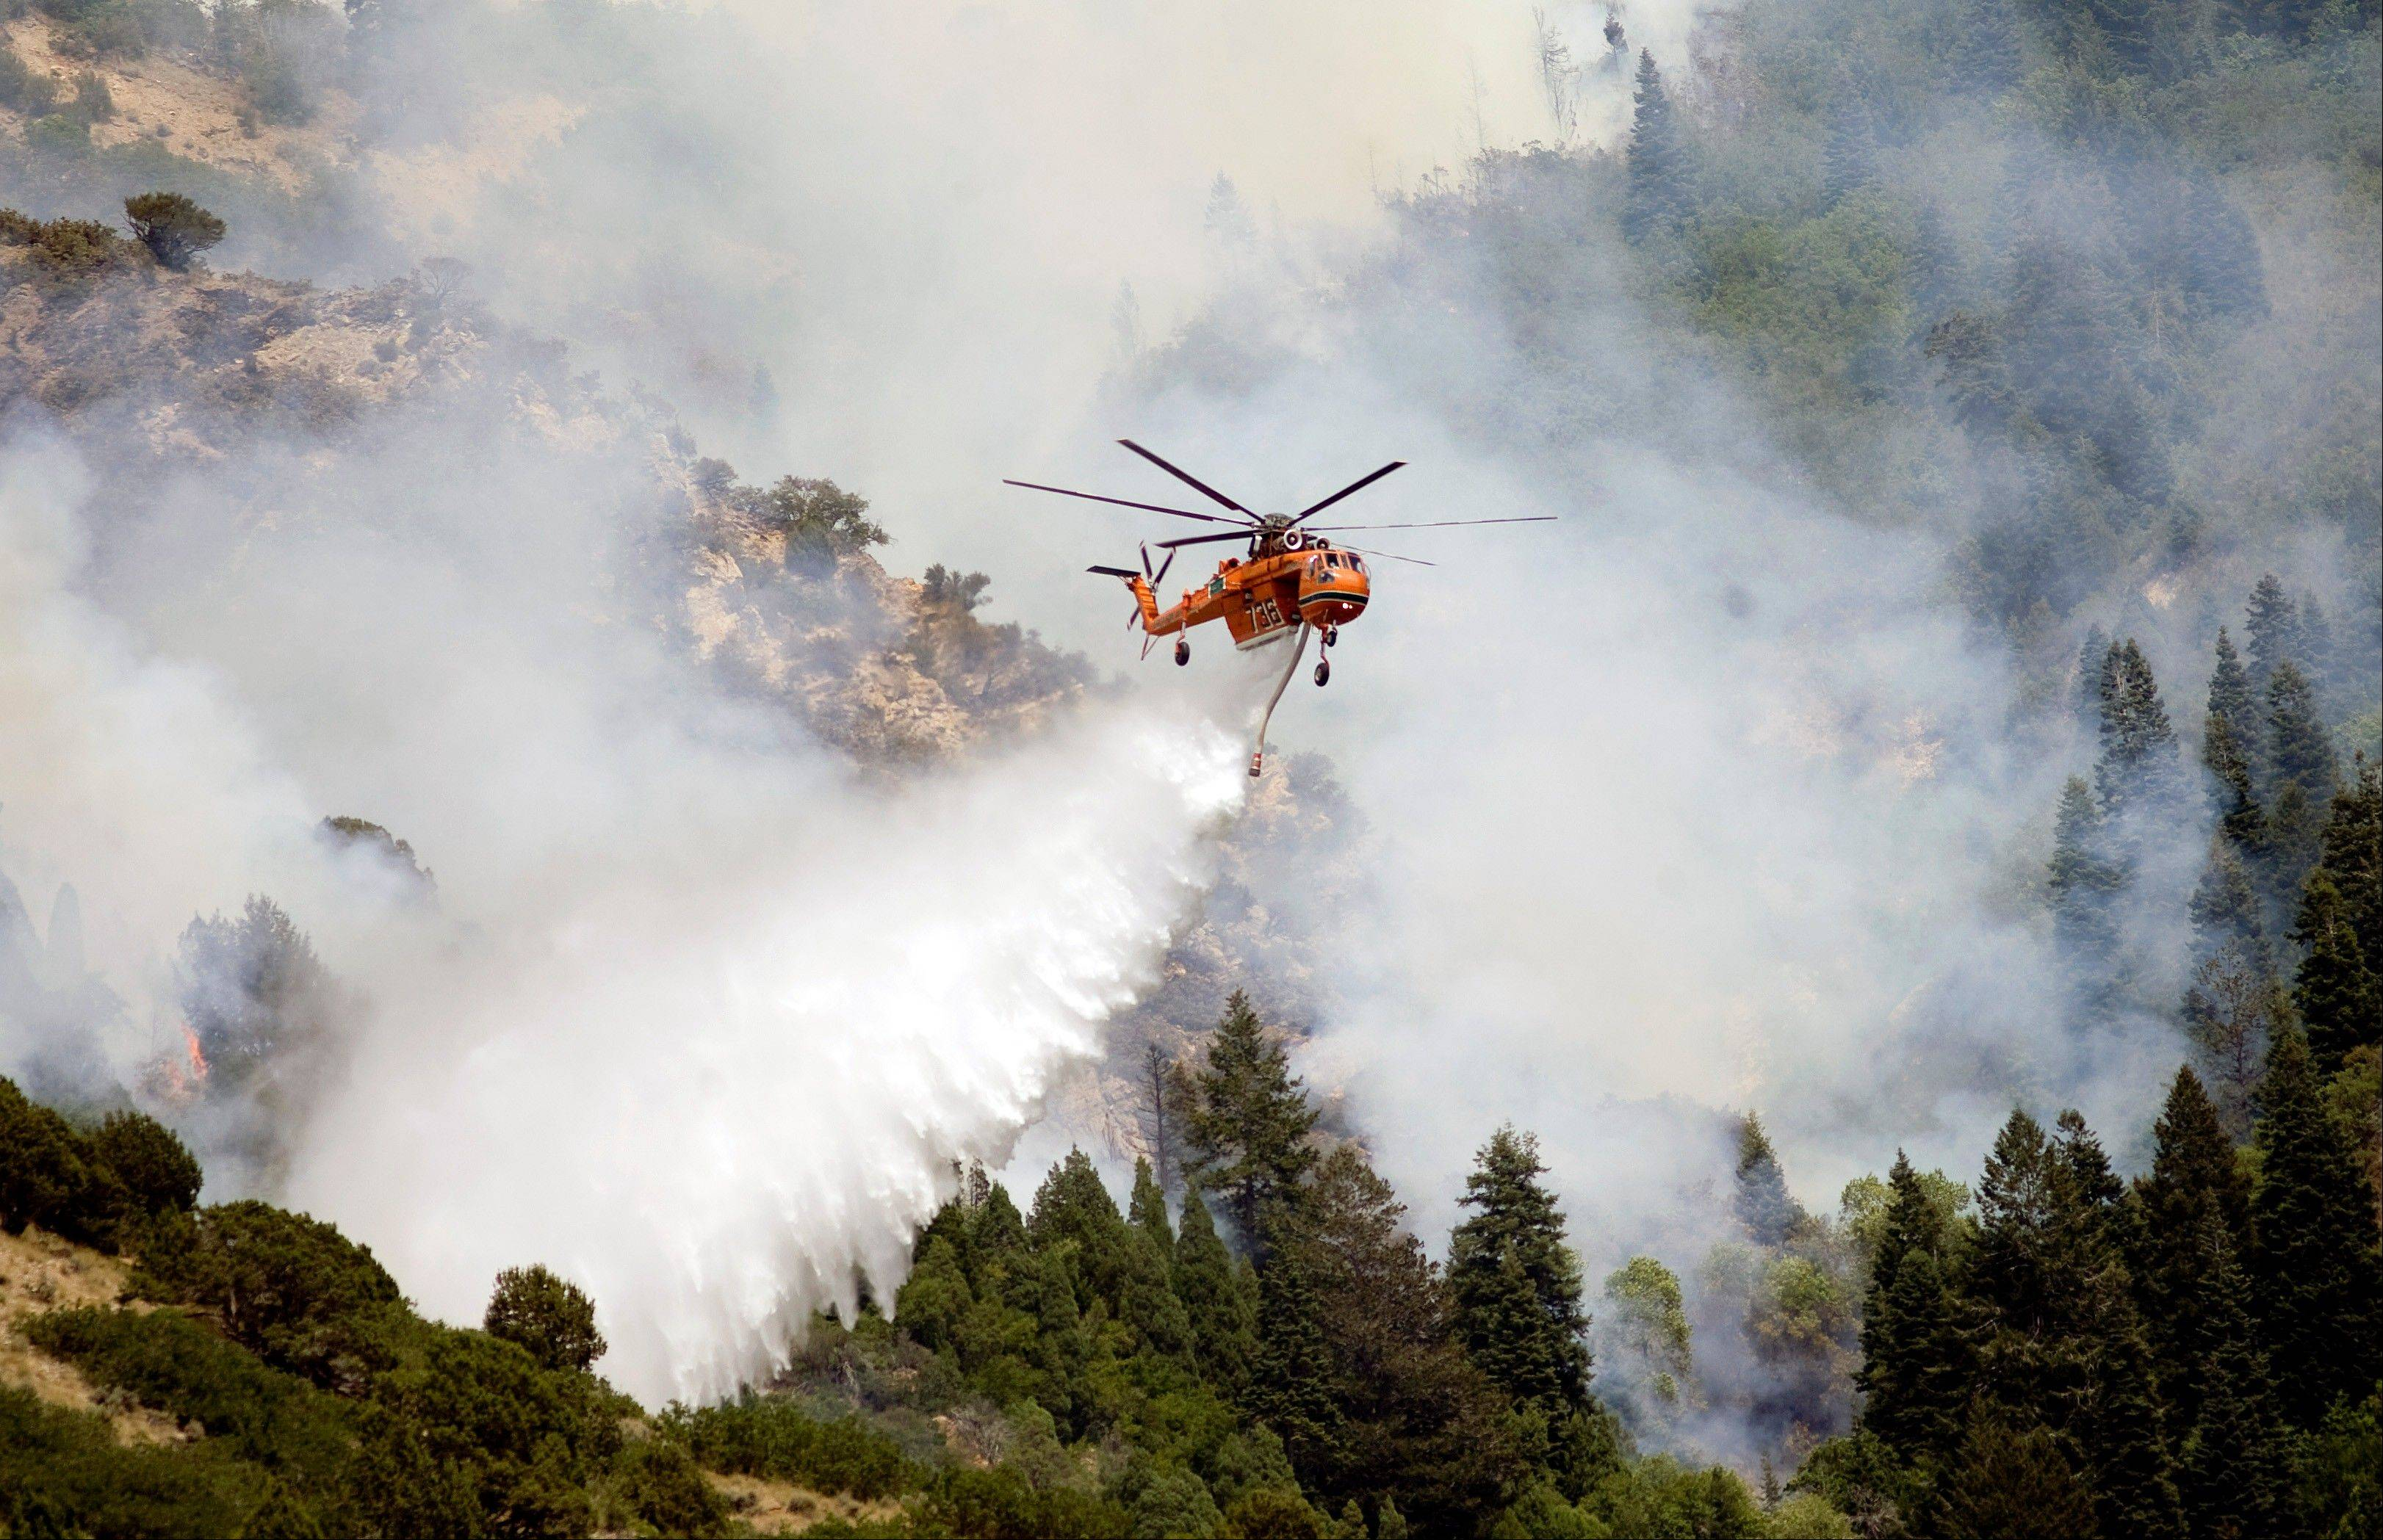 Air crews continue to battle a wildfire near Alpine, Utah, Wednesday. The fire has charred 2,887 acres since it started Tuesday afternoon. About 500 homes will remain evacuated for at least two days.